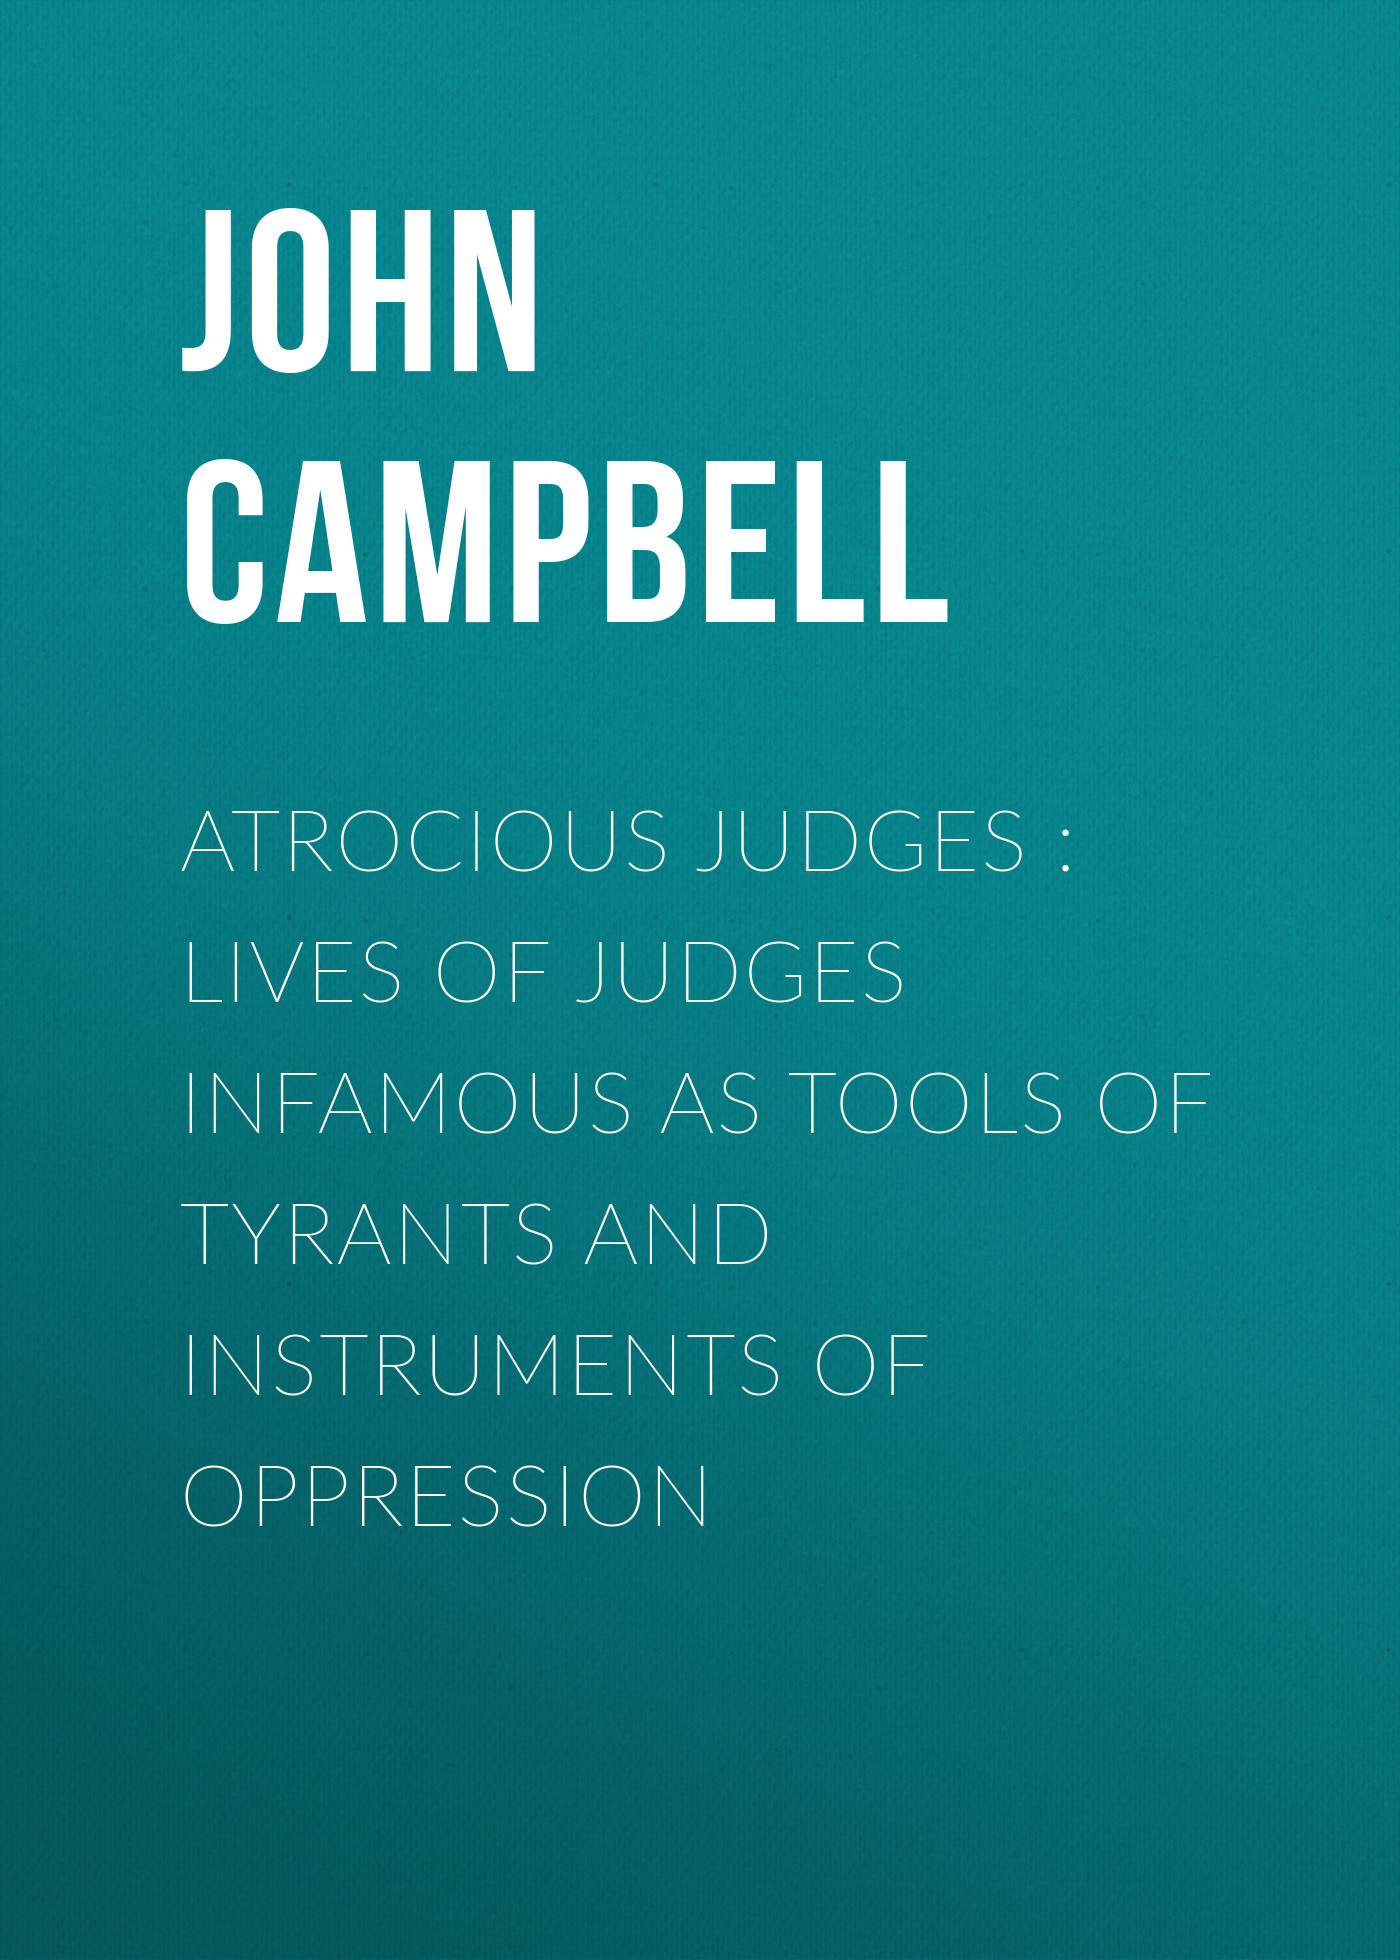 Atrocious Judges : Lives of Judges Infamous as Tools of Tyrants and Instruments of Oppression